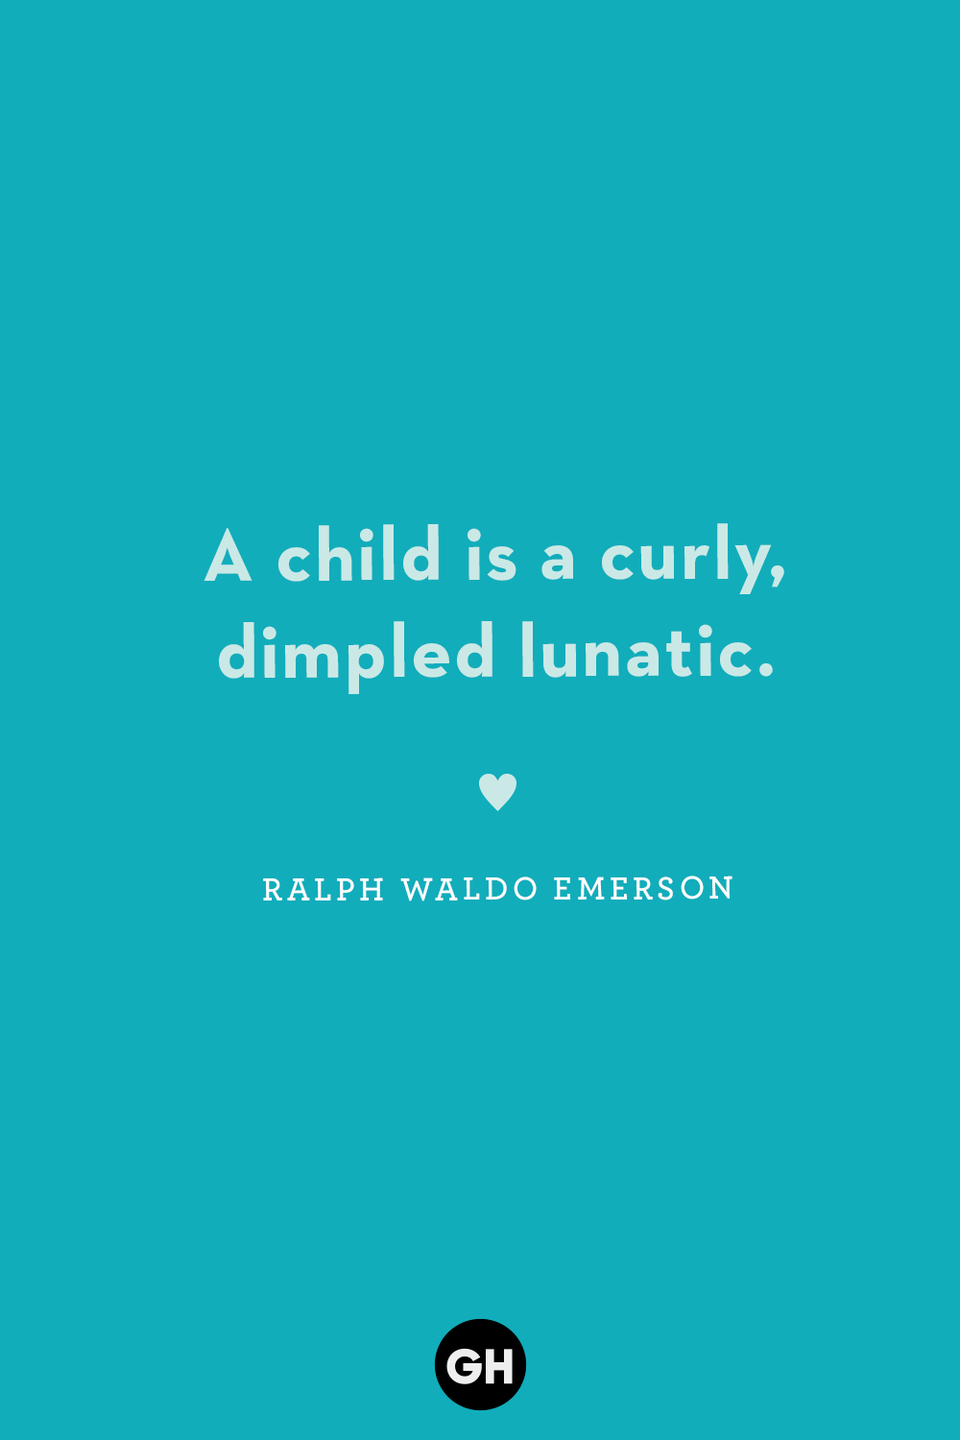 <p>A child is a curly, dimpled lunatic.</p>